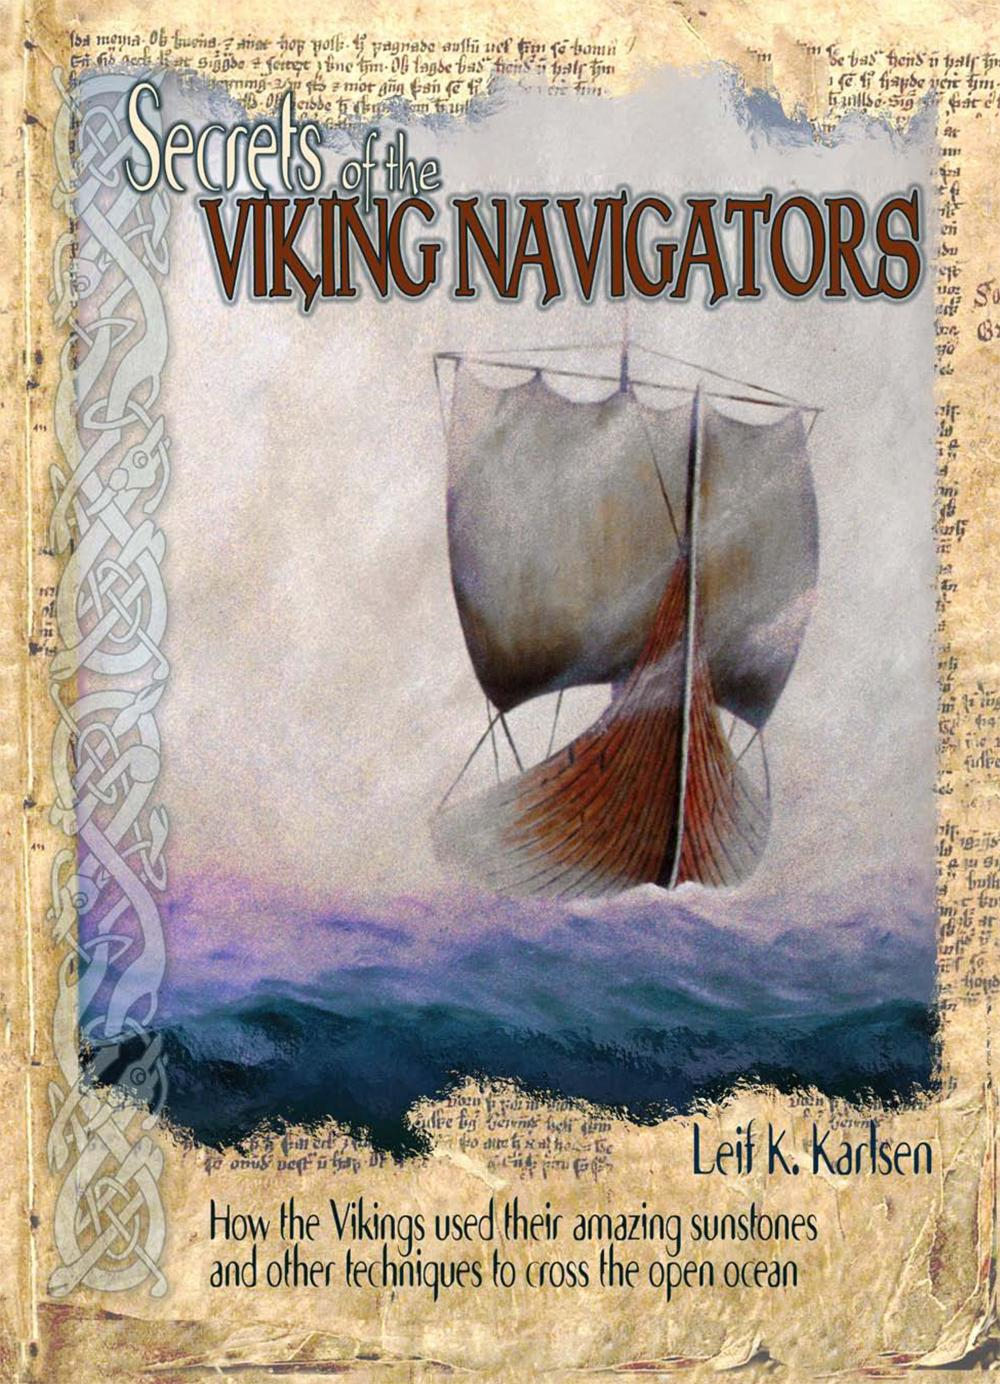 Secrets of the Viking Navigators - How the Vikings used their amazing sunstones and other techniques to cross the open ocean